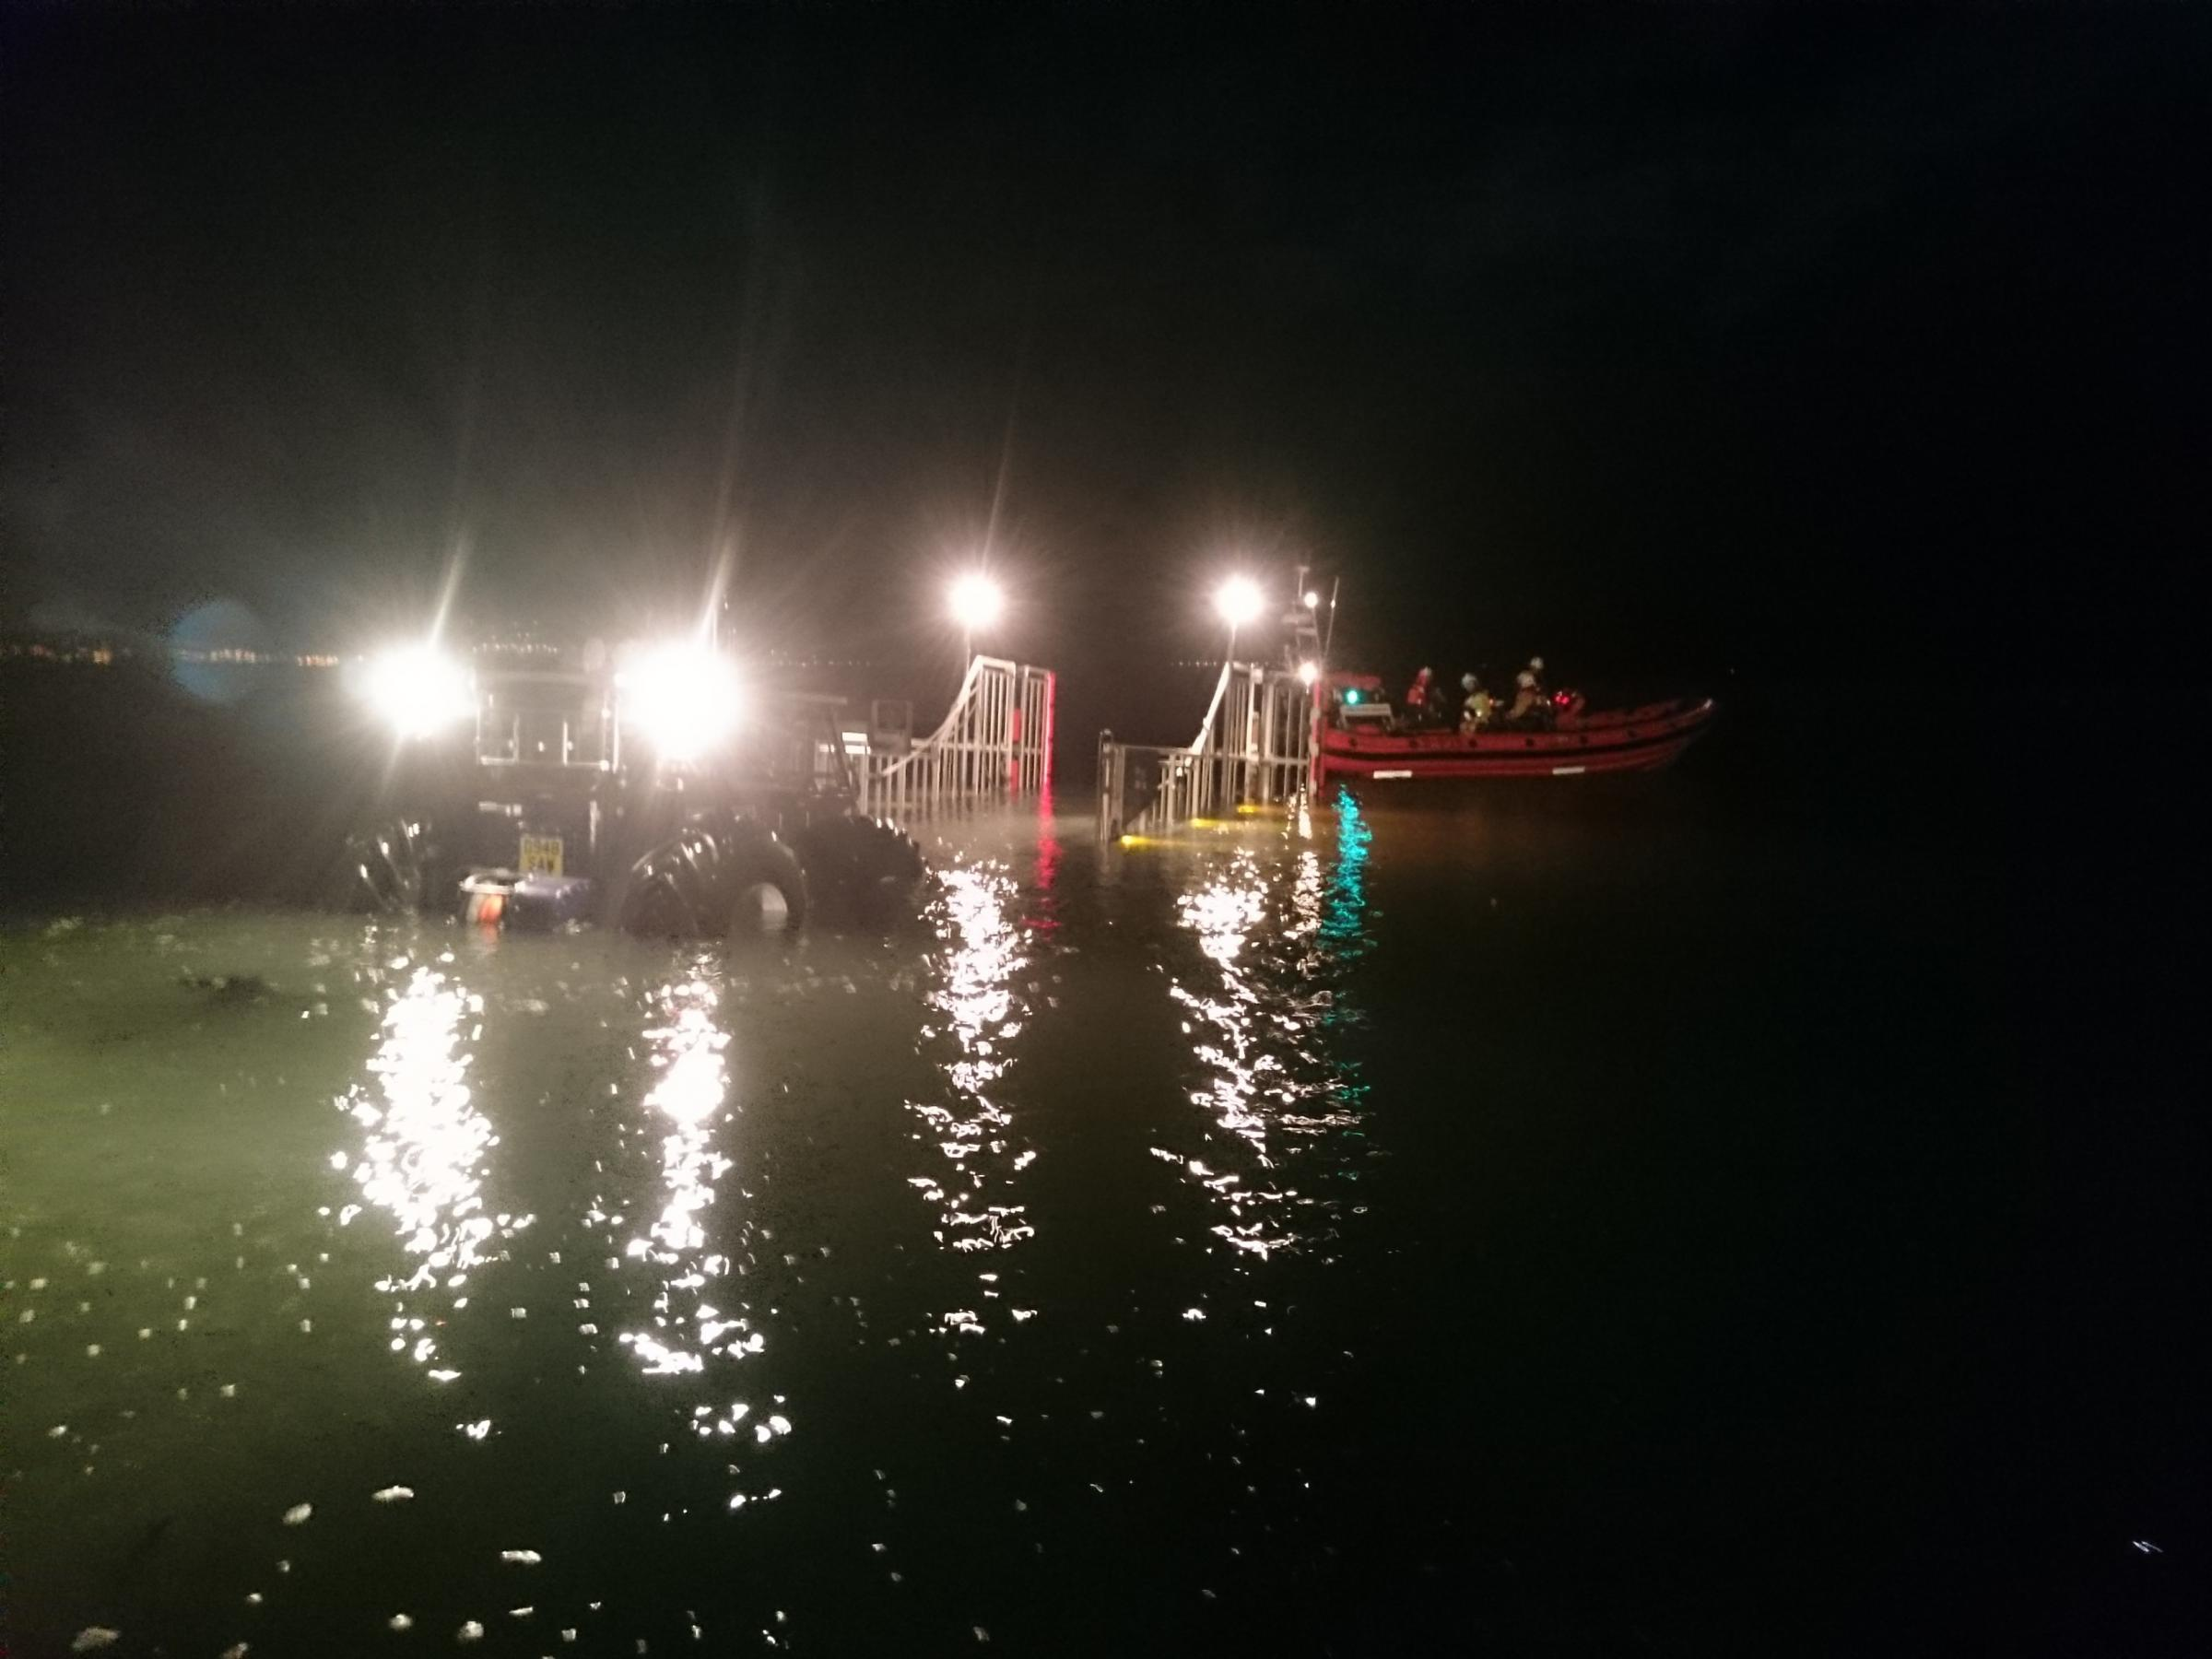 Beaumaris lifeboat late night rescue